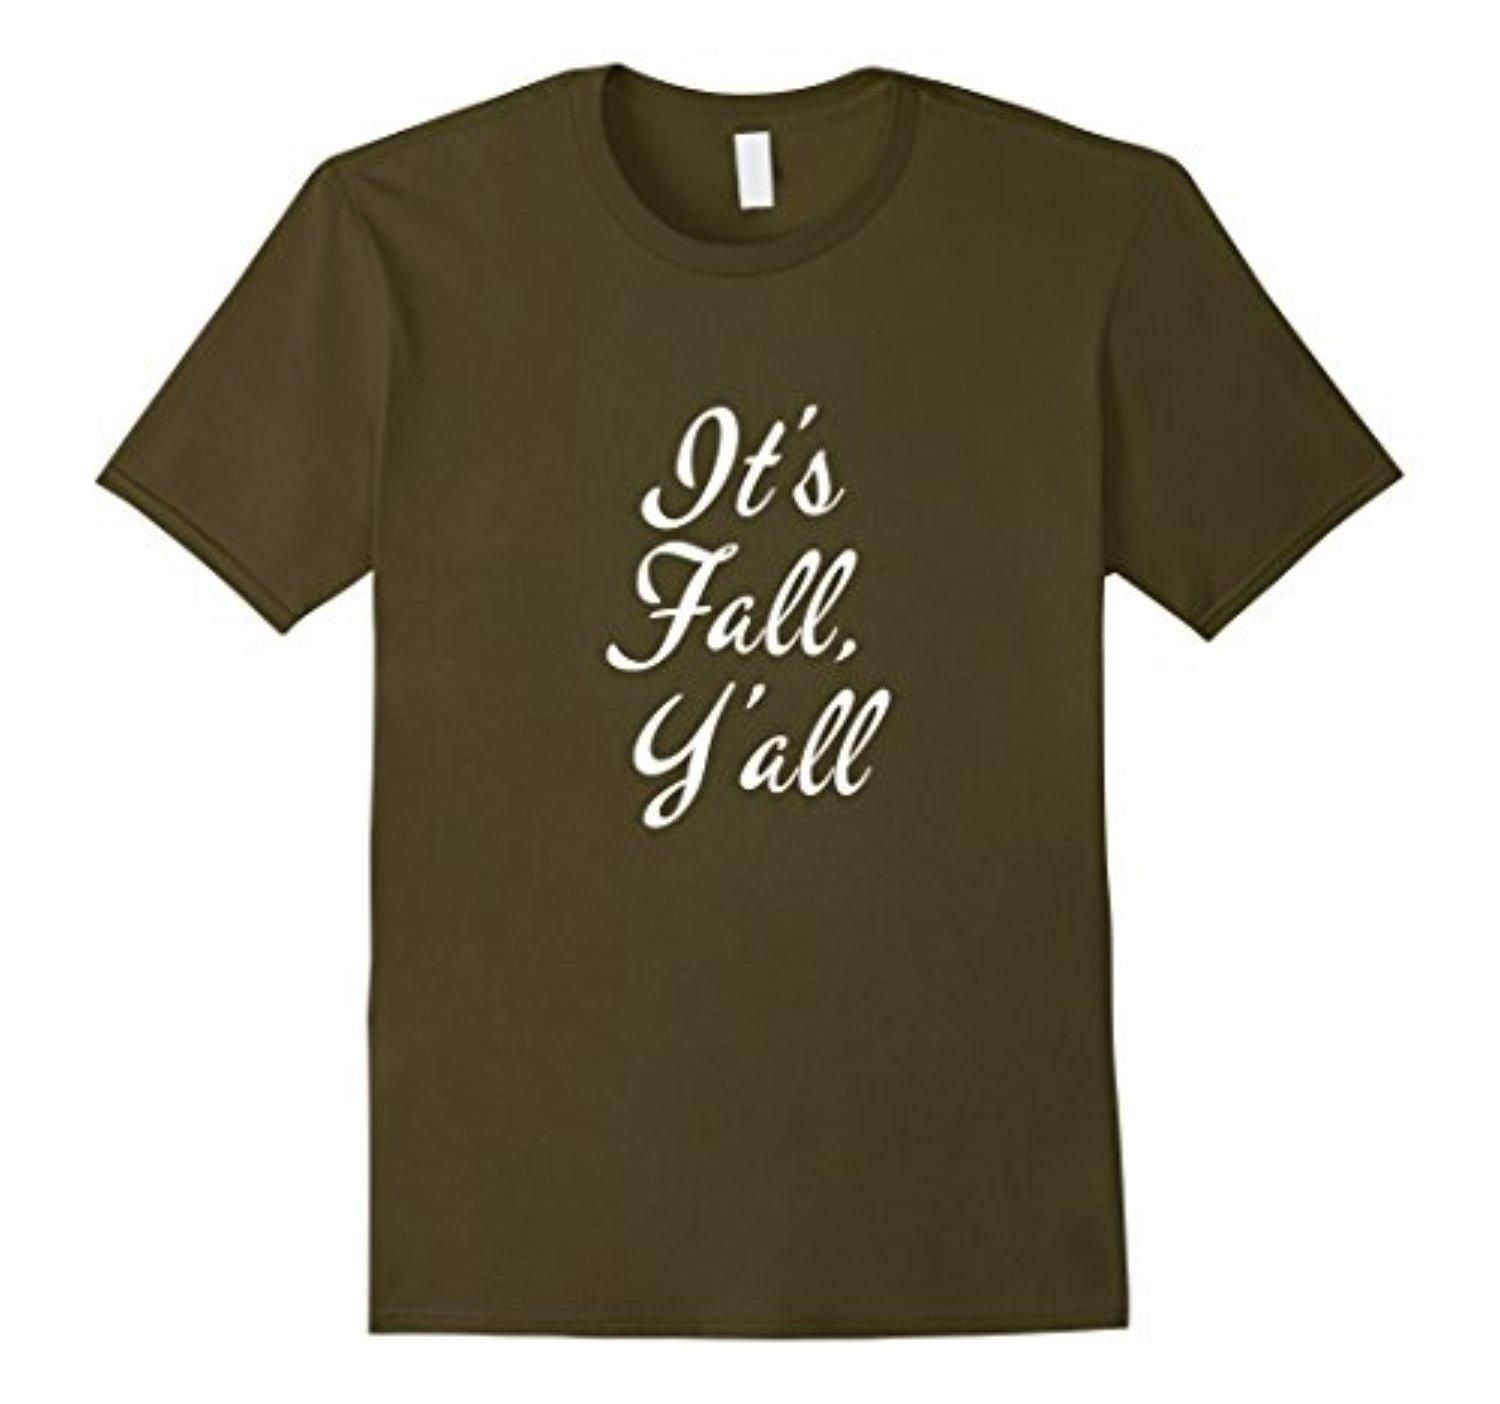 Men's It's Fall, Y'all t-shirt (5 color options!) Large Olive - Brought to you by Avarsha.com